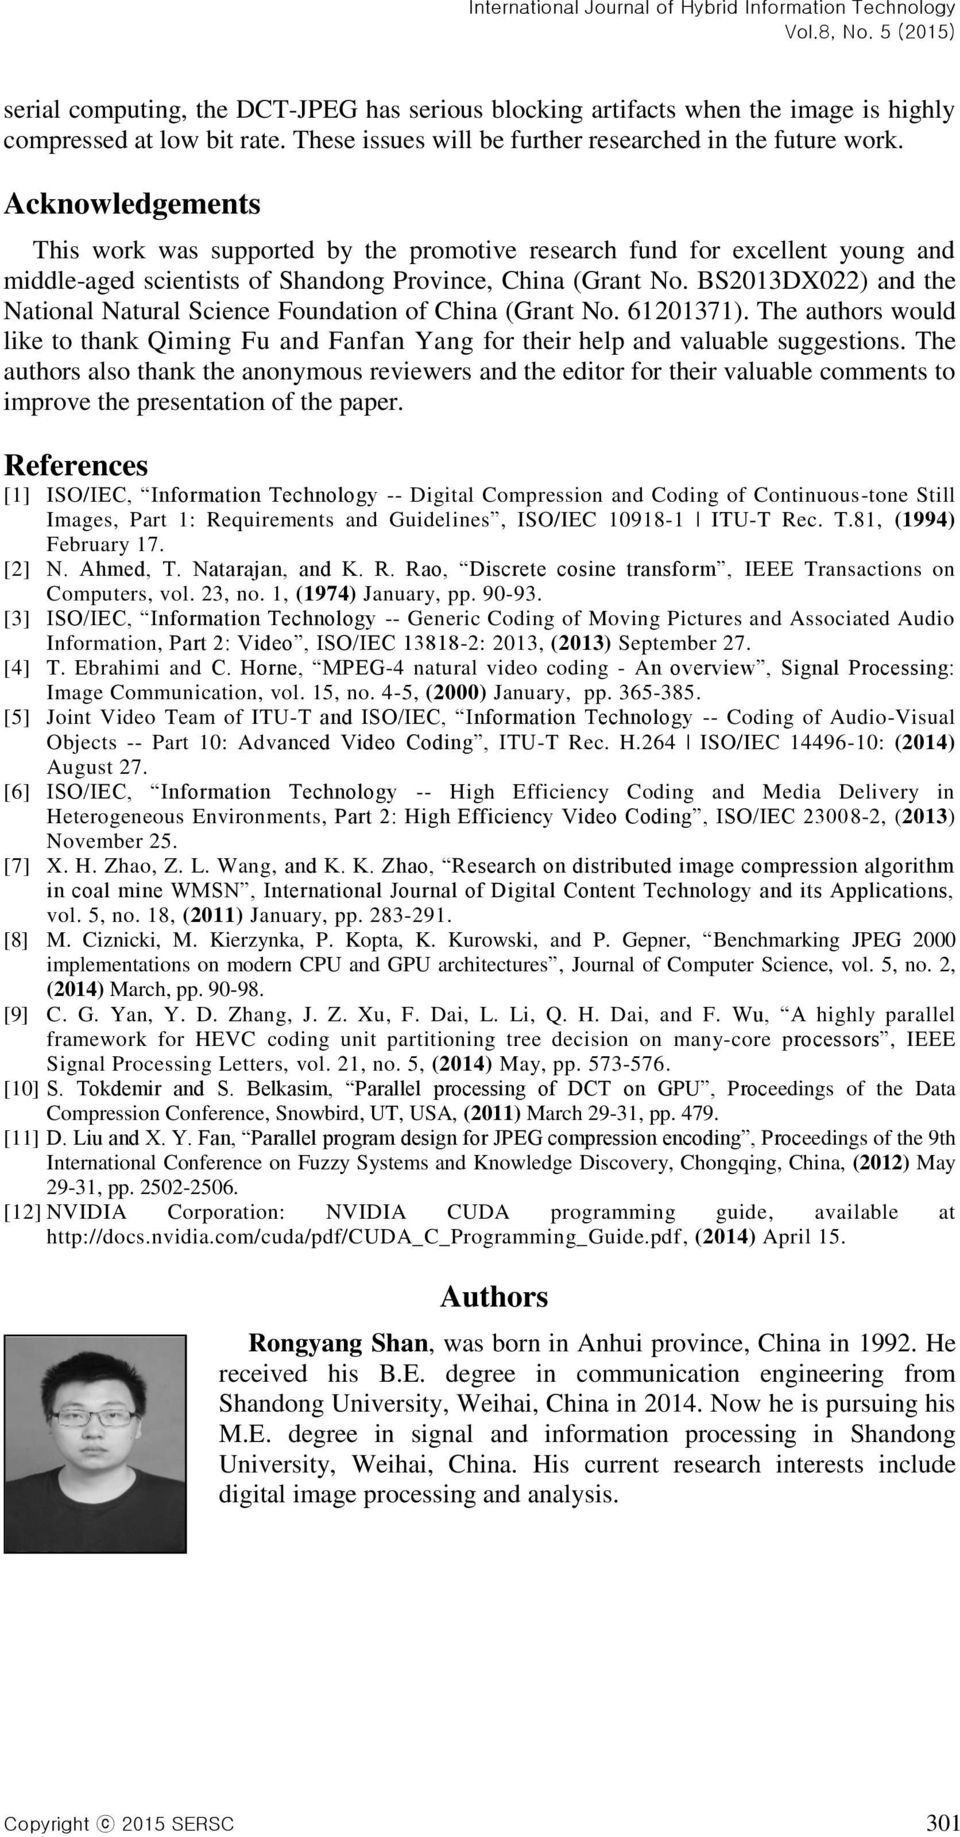 BS2013DX022) and the National Natural Science Foundation of China (Grant No. 61201371). The authors would like to thank Qiming Fu and Fanfan Yang for their help and valuable suggestions.